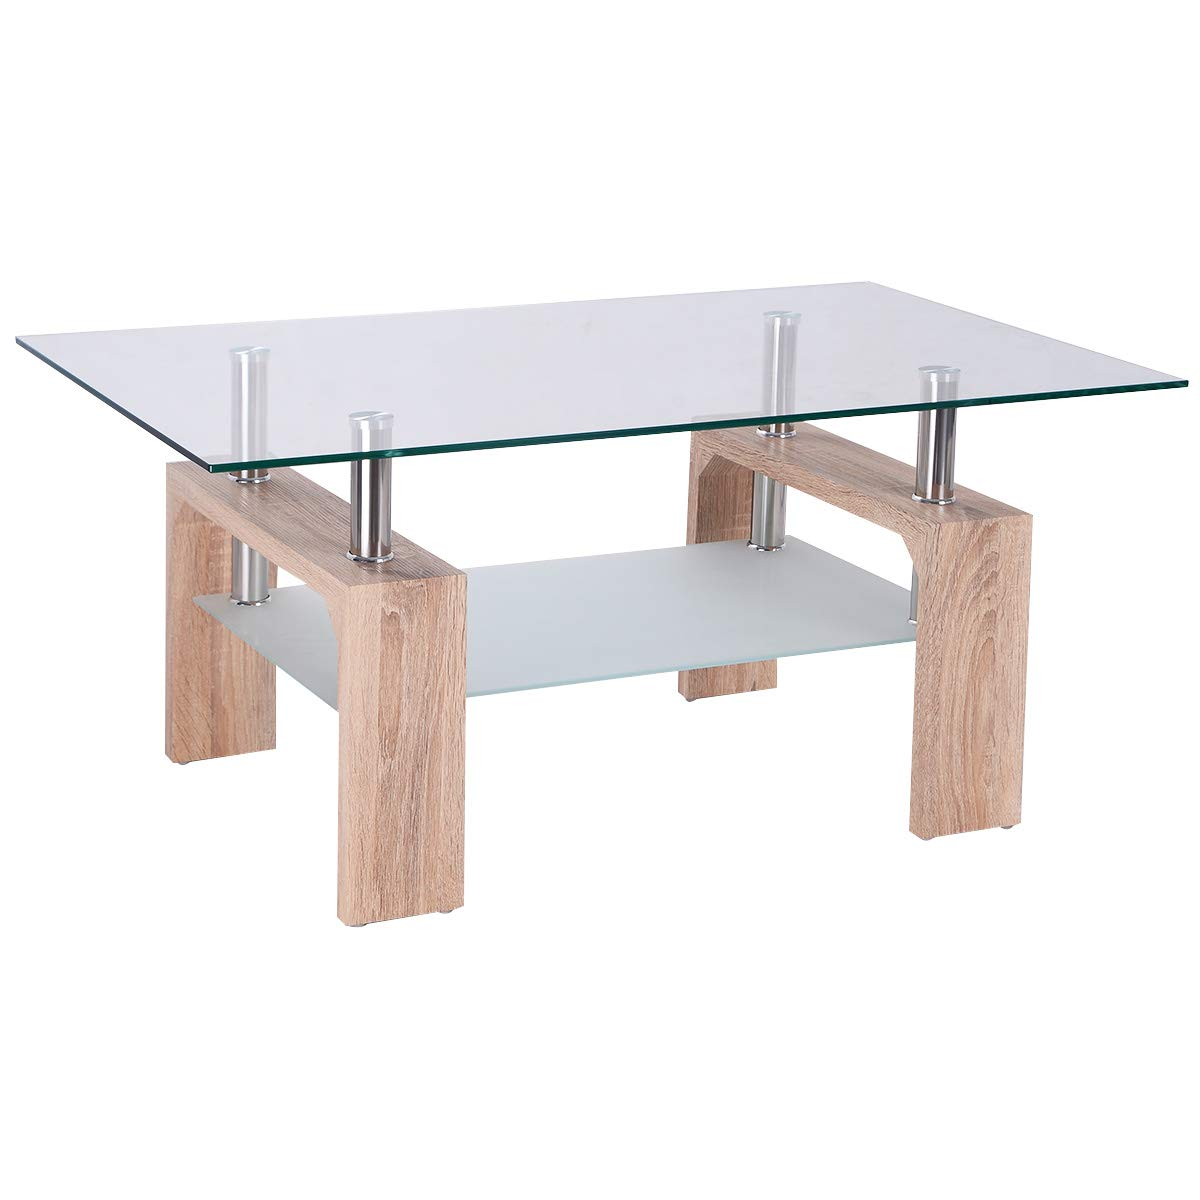 Black Tangkula Glass Coffee Table Modern Simple Style Rectangular Wood Legs End Side Table Living Room Home Furniture with Shelf